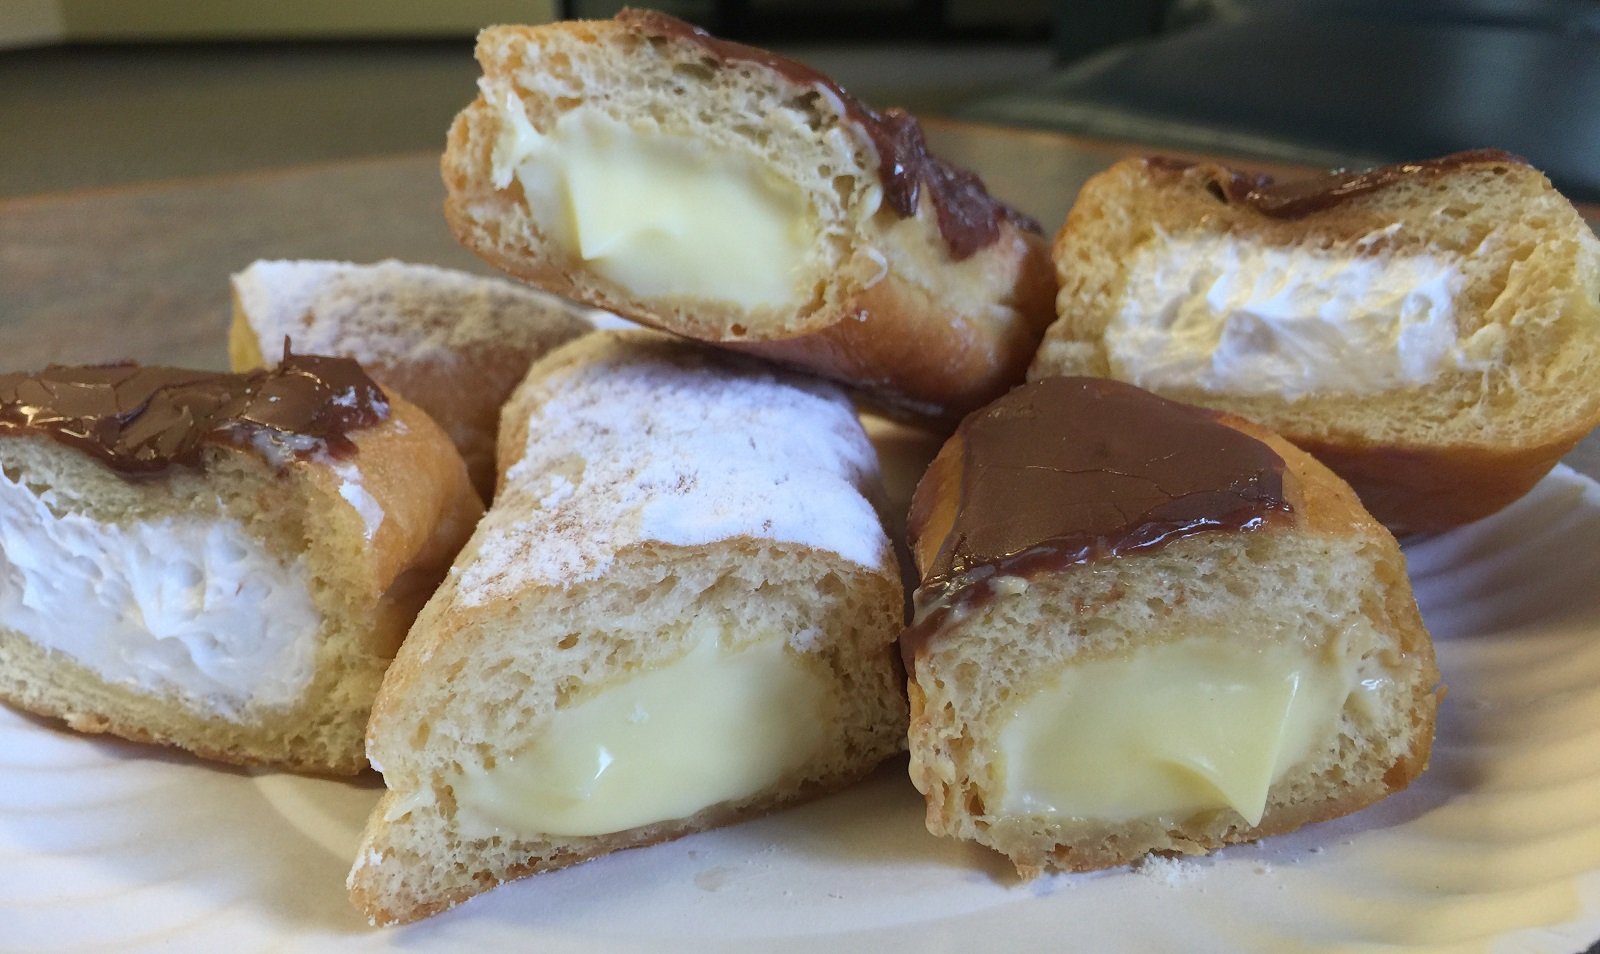 Happy National Cream Filled Doughnut Day, Buffalo. Here are some examples from Eileen's Bakery in West Seneca. (Andrew Galarneau/Buffalo News)